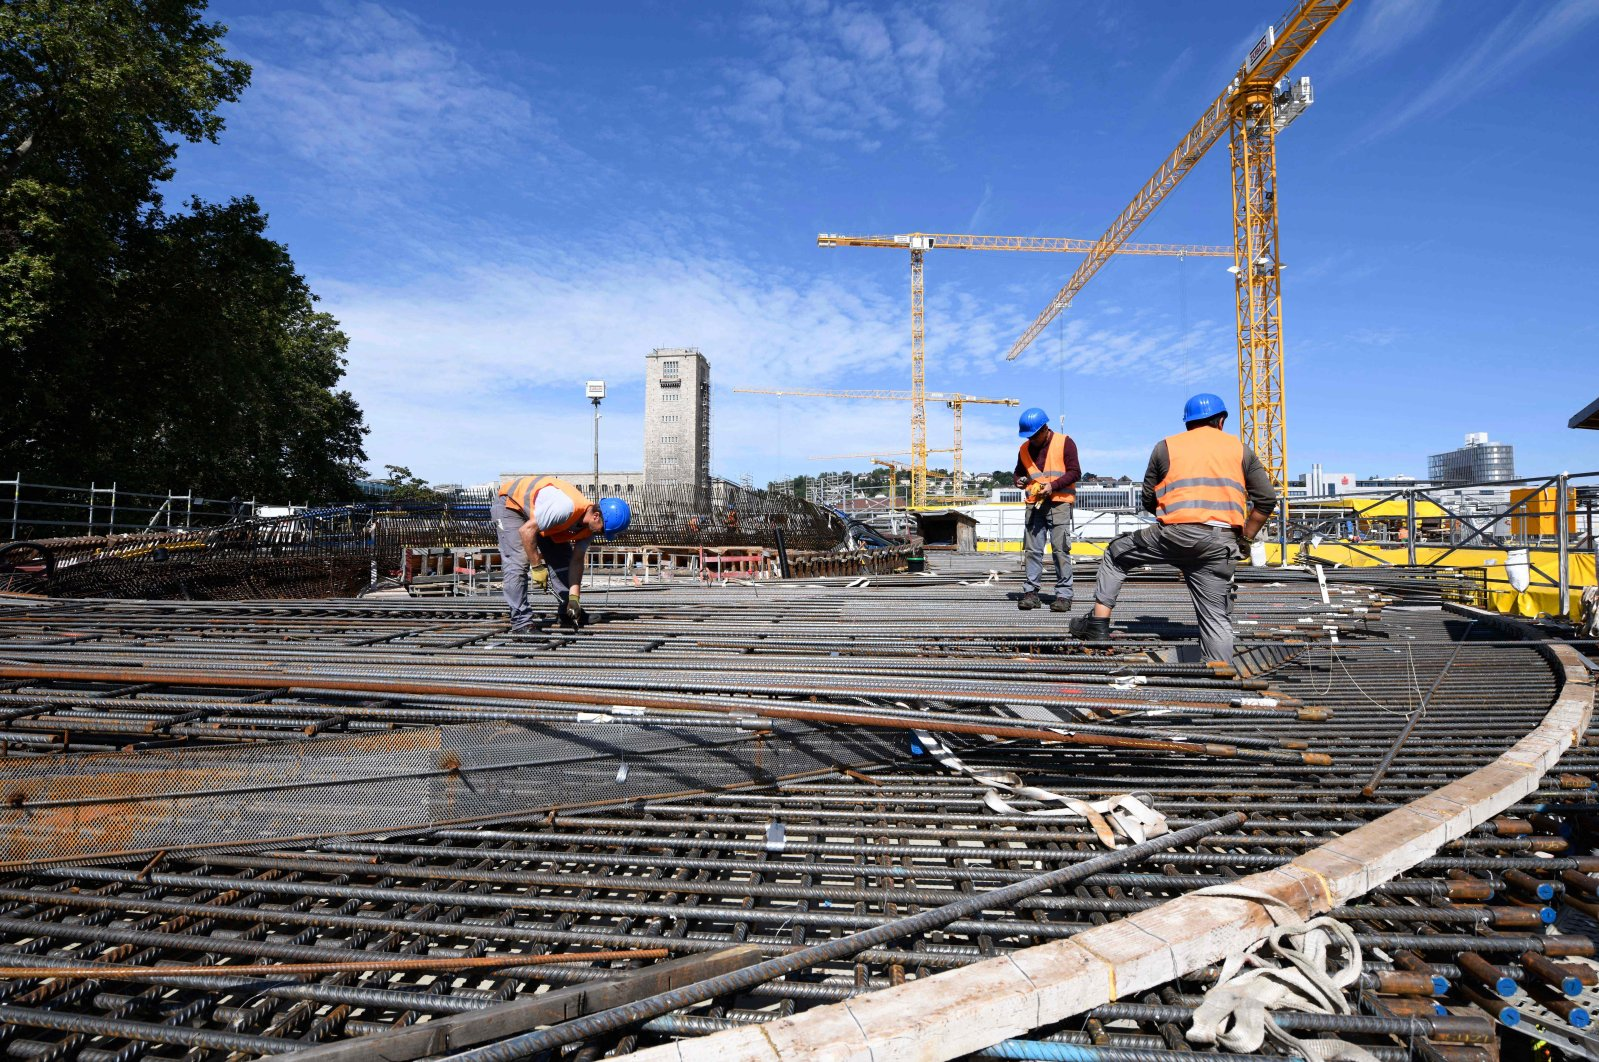 Workers build up a support for the platform hall on the construction site of the Stuttgart 21 railway project at the main station in Stuttgart, Germany, Aug. 9, 2021. (AFP Photo)